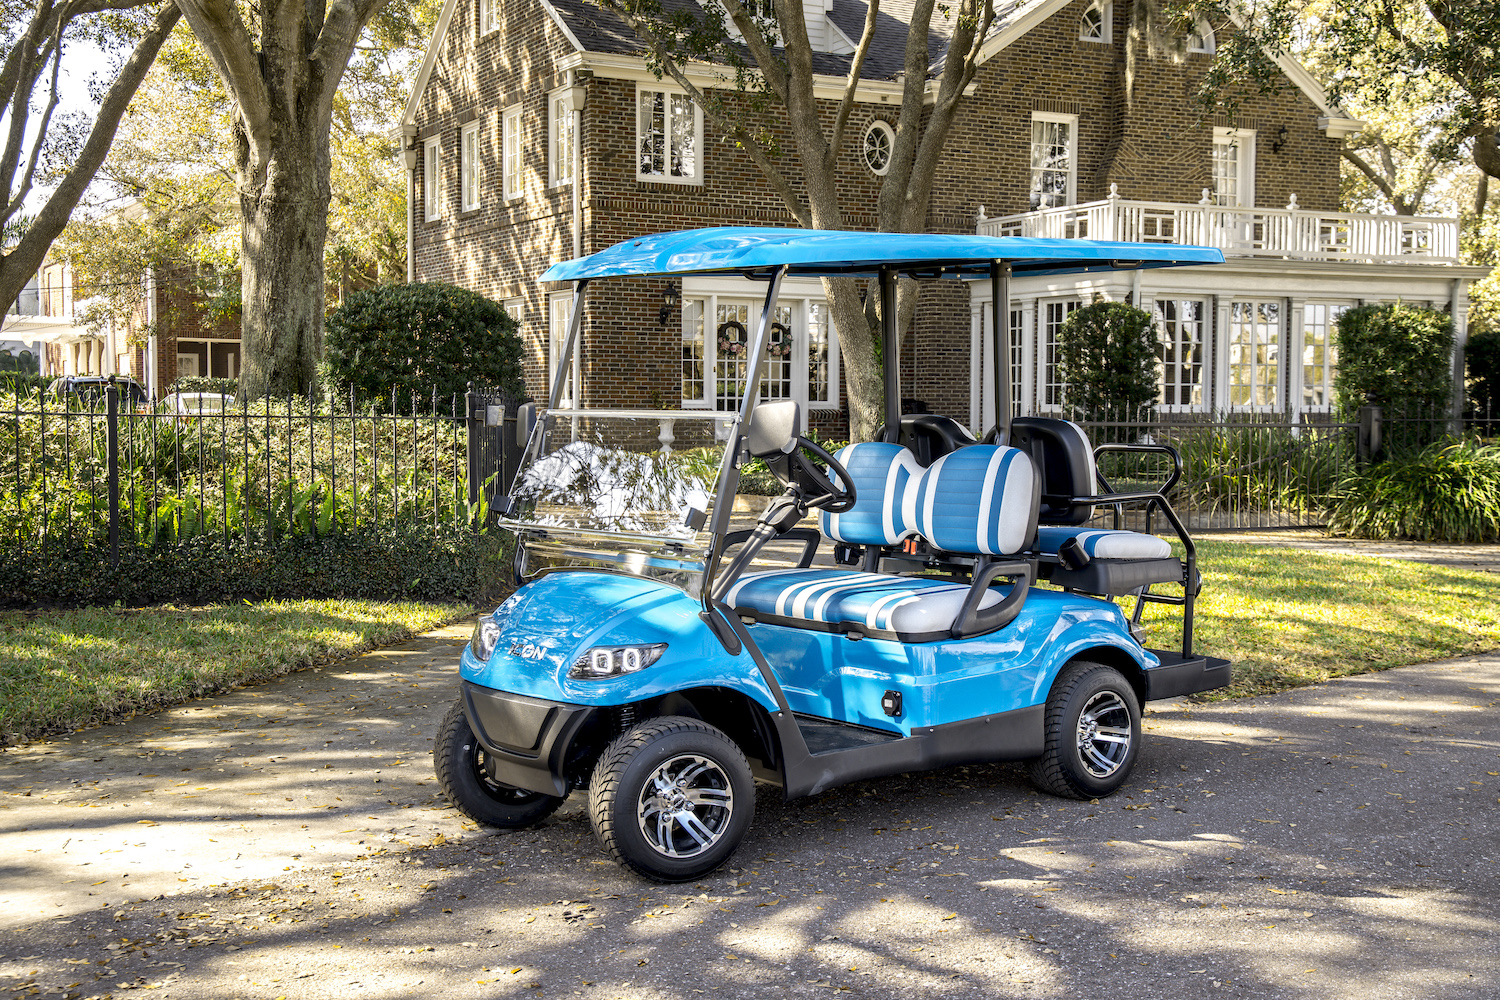 Used Golf Carts: What To Look For When Buying A Used Electric Golf Cart